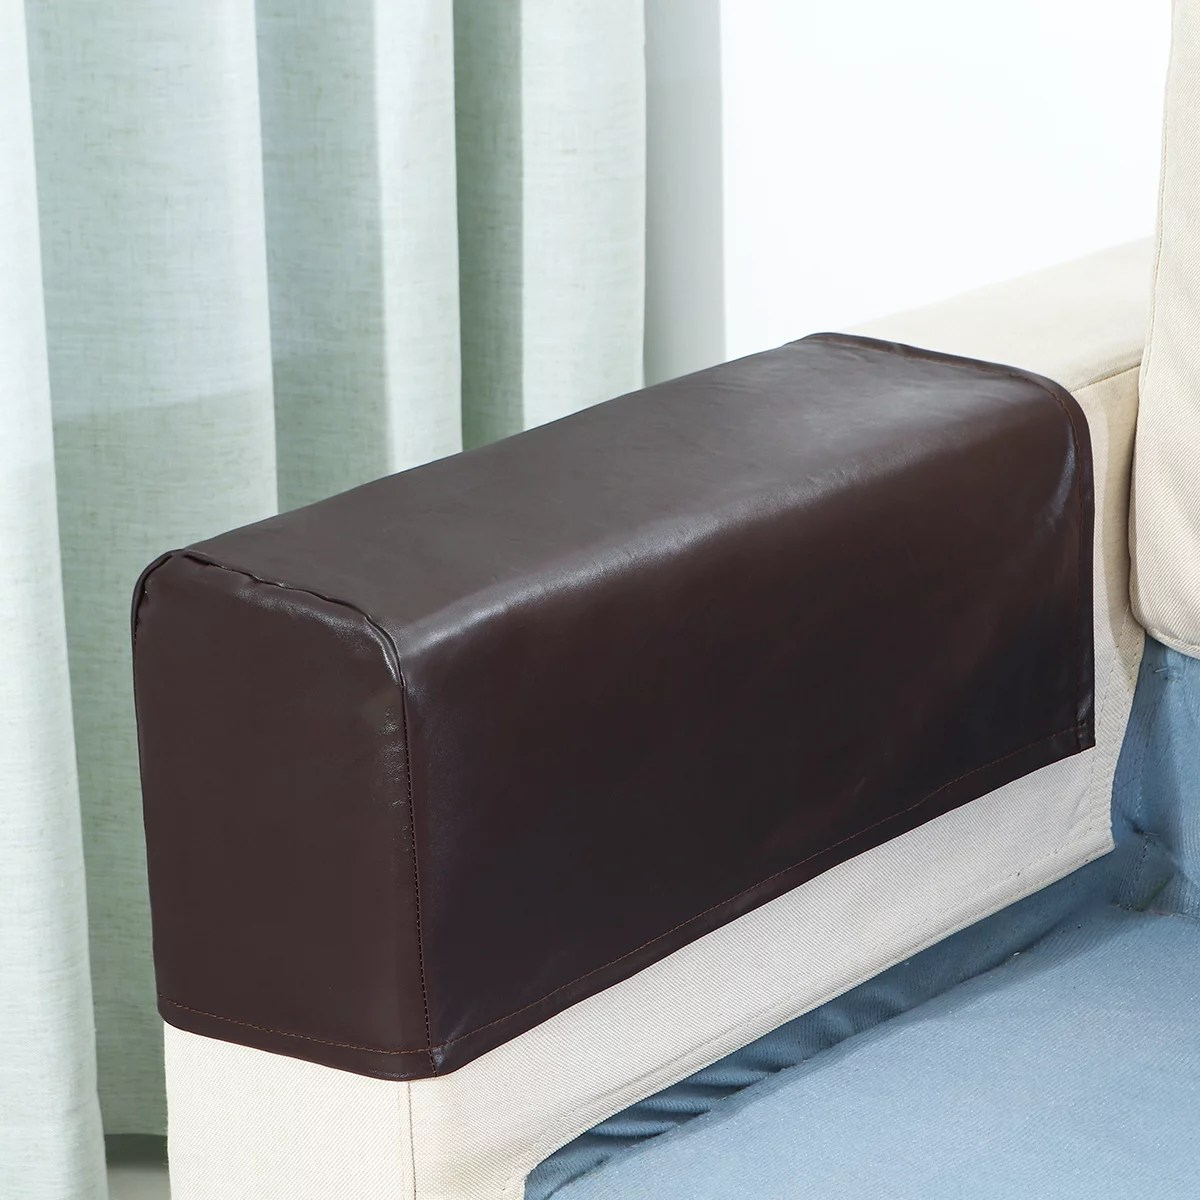 elastic 2pc set pu leather sofa covers waterproof sofa armrest covers for couch chair arm protectors slipcover stretchy coffee walmart com